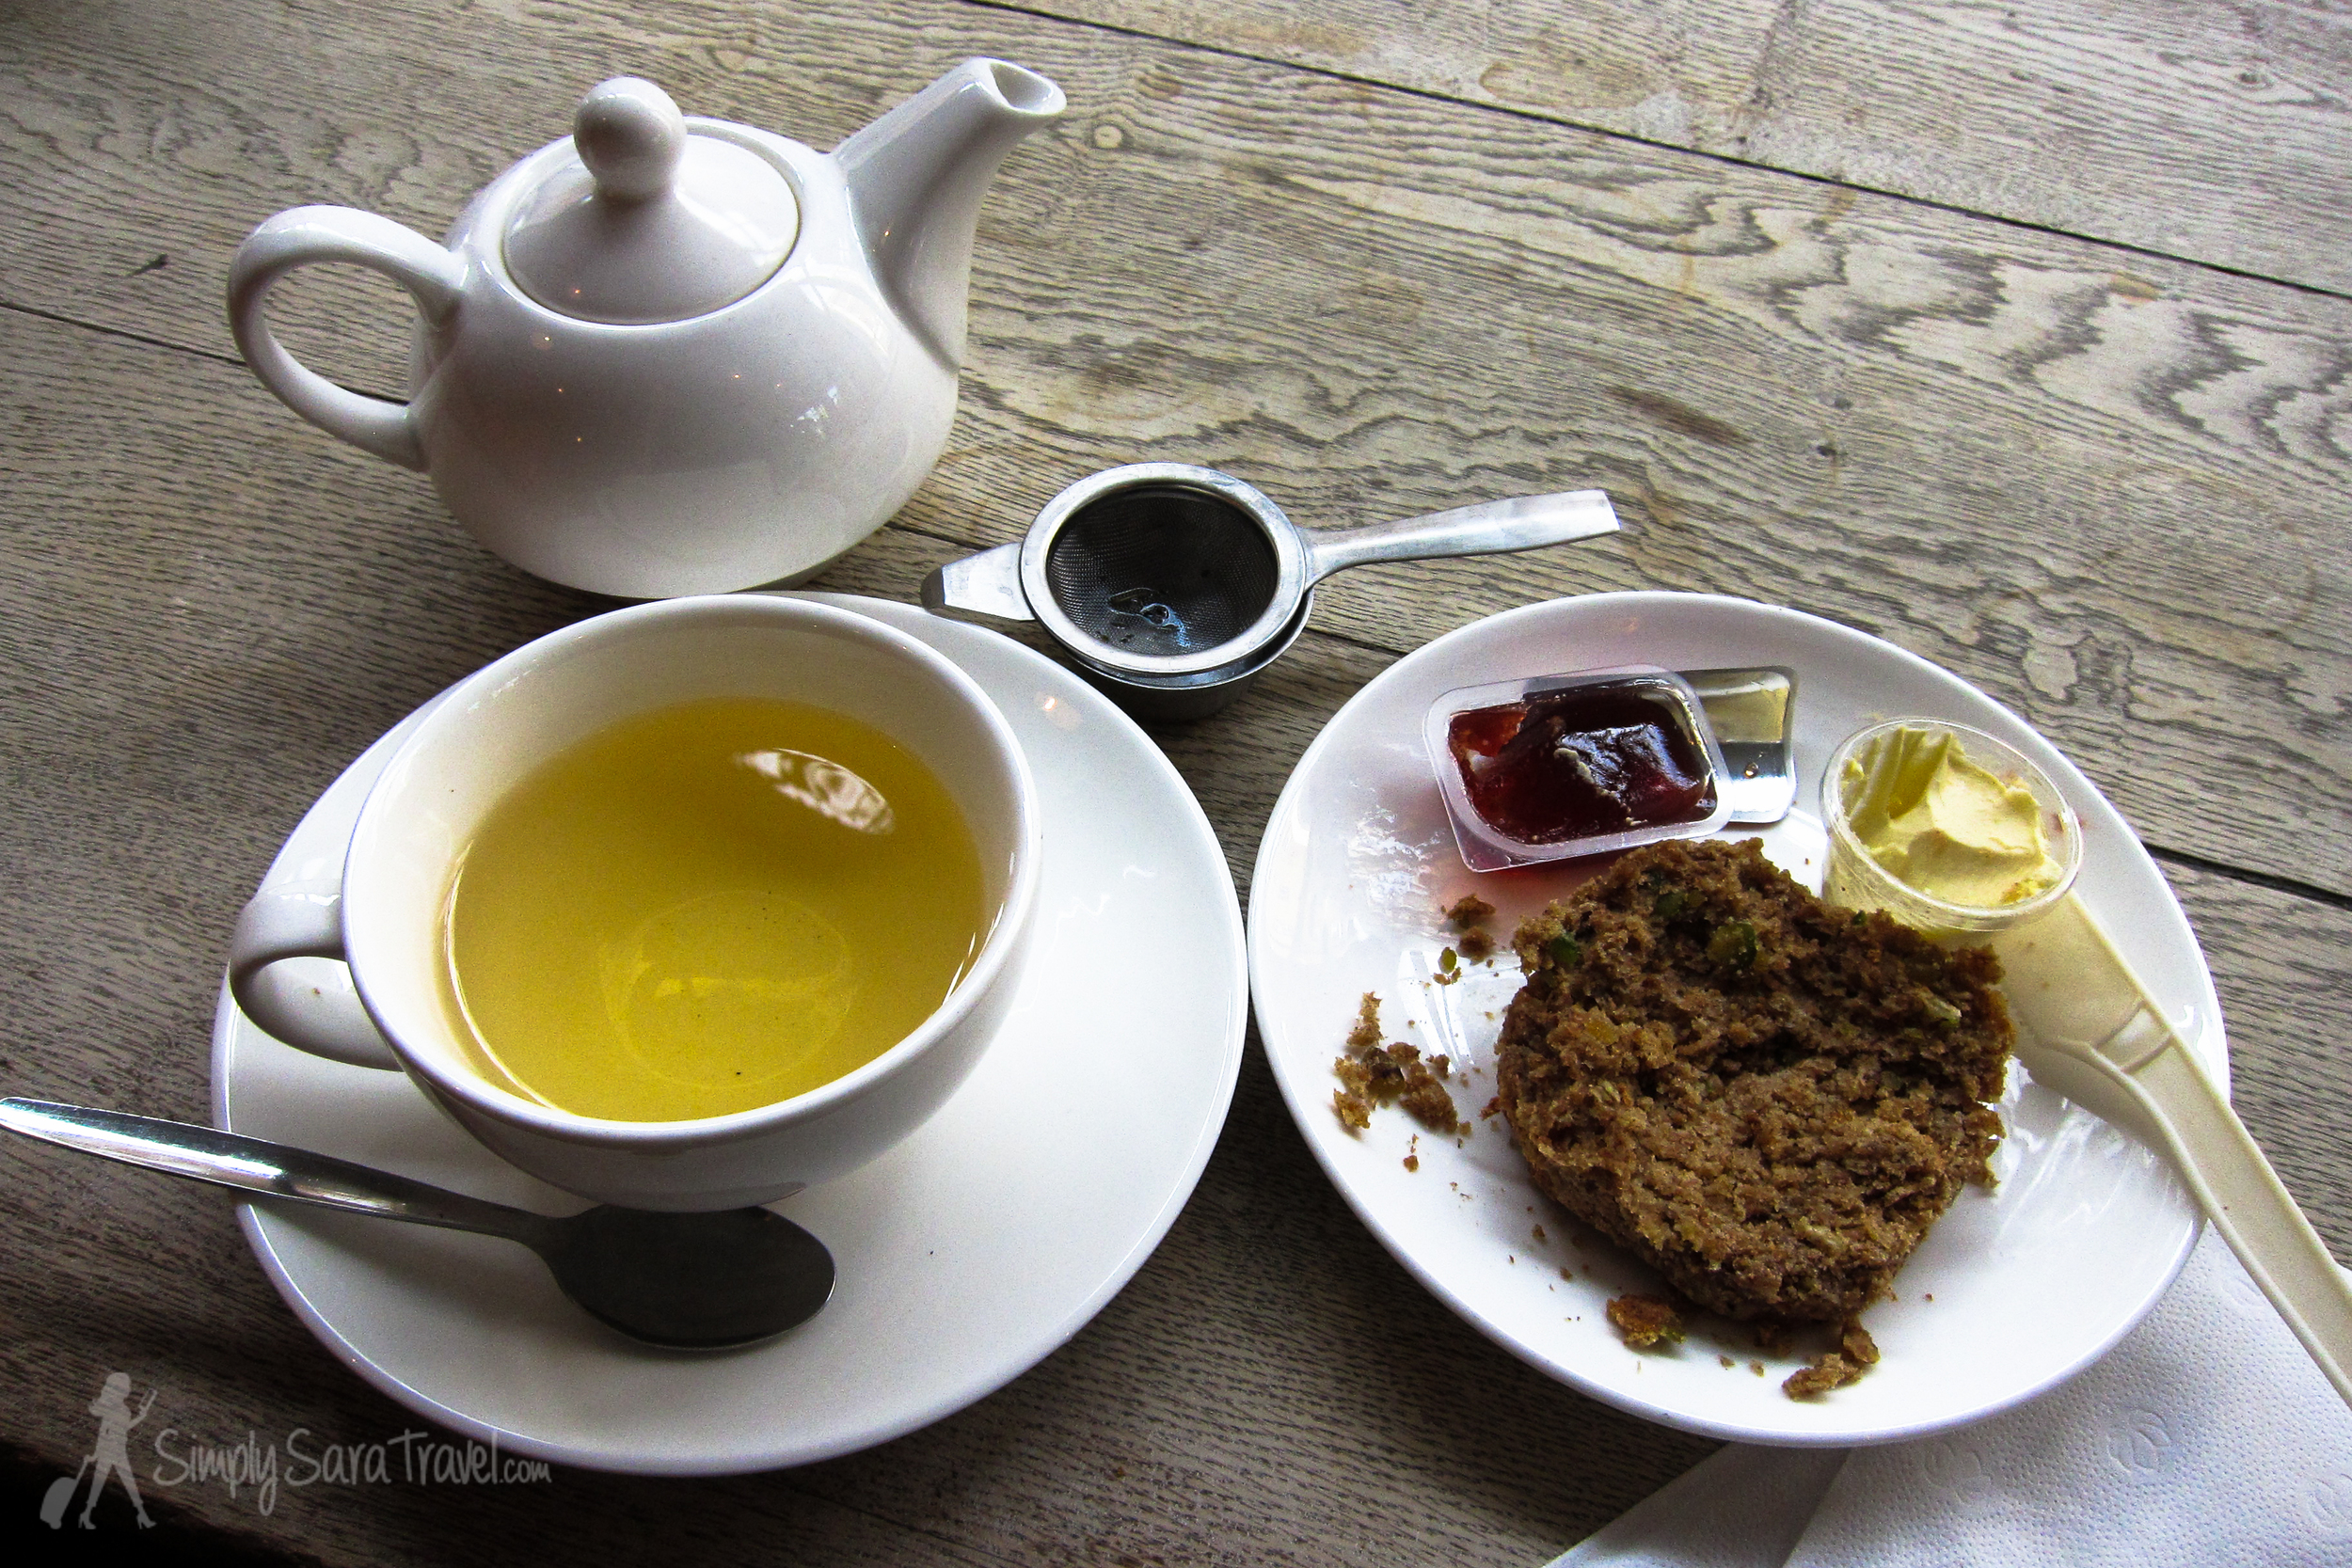 Mango tea and a scone - perfect start to a day in London